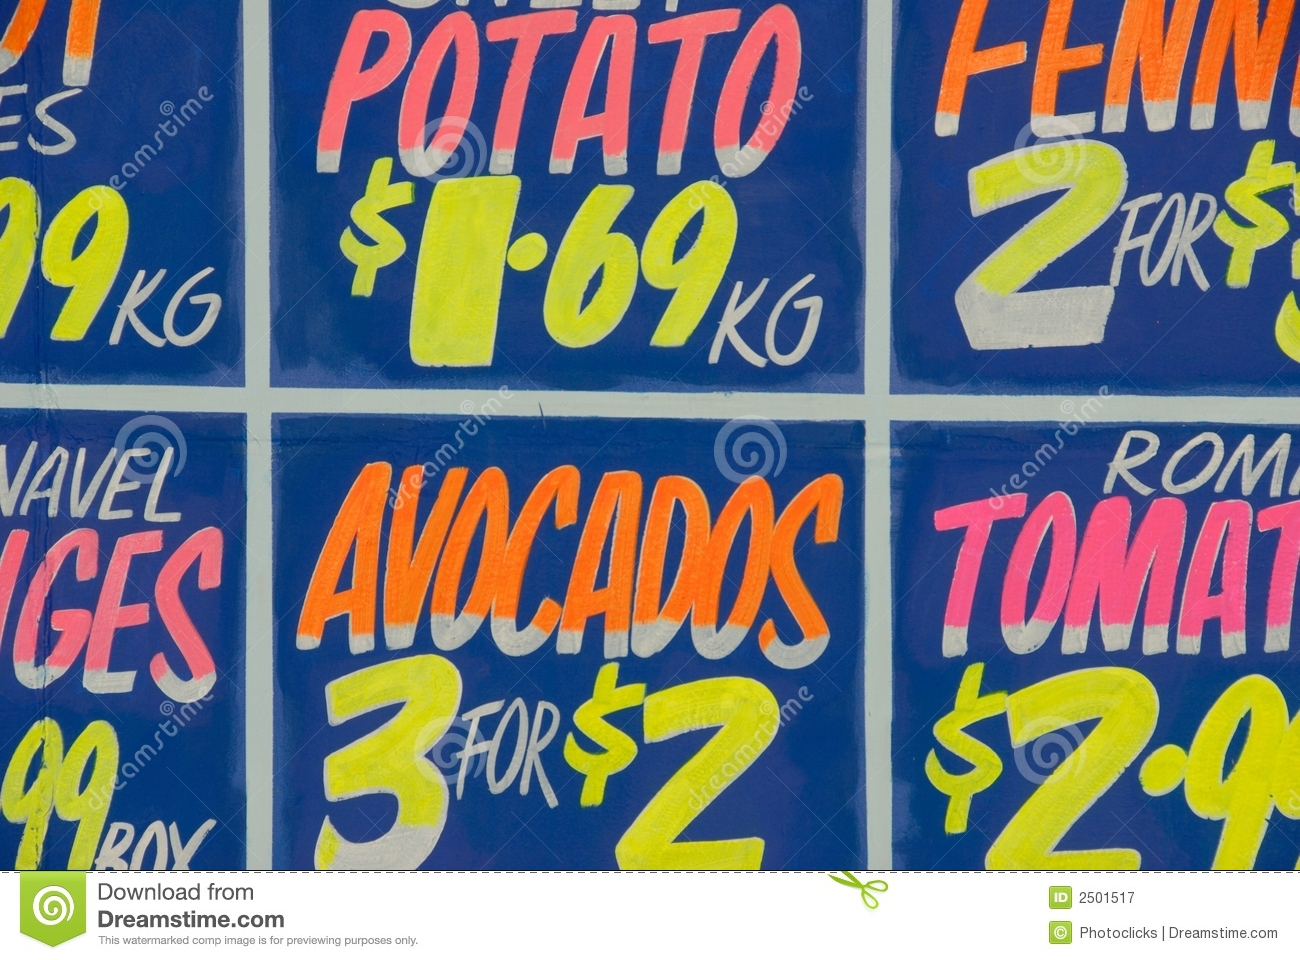 A Fruit Shop Sign Stock Image Image Of Produce, Orange. Therapy Signs. Listorganic Signs. Blood Clot Signs Of Stroke. Valley Fever Signs. Biological Signs. Original Signs Of Stroke. Railway Signs. Untuk Signs Of Stroke